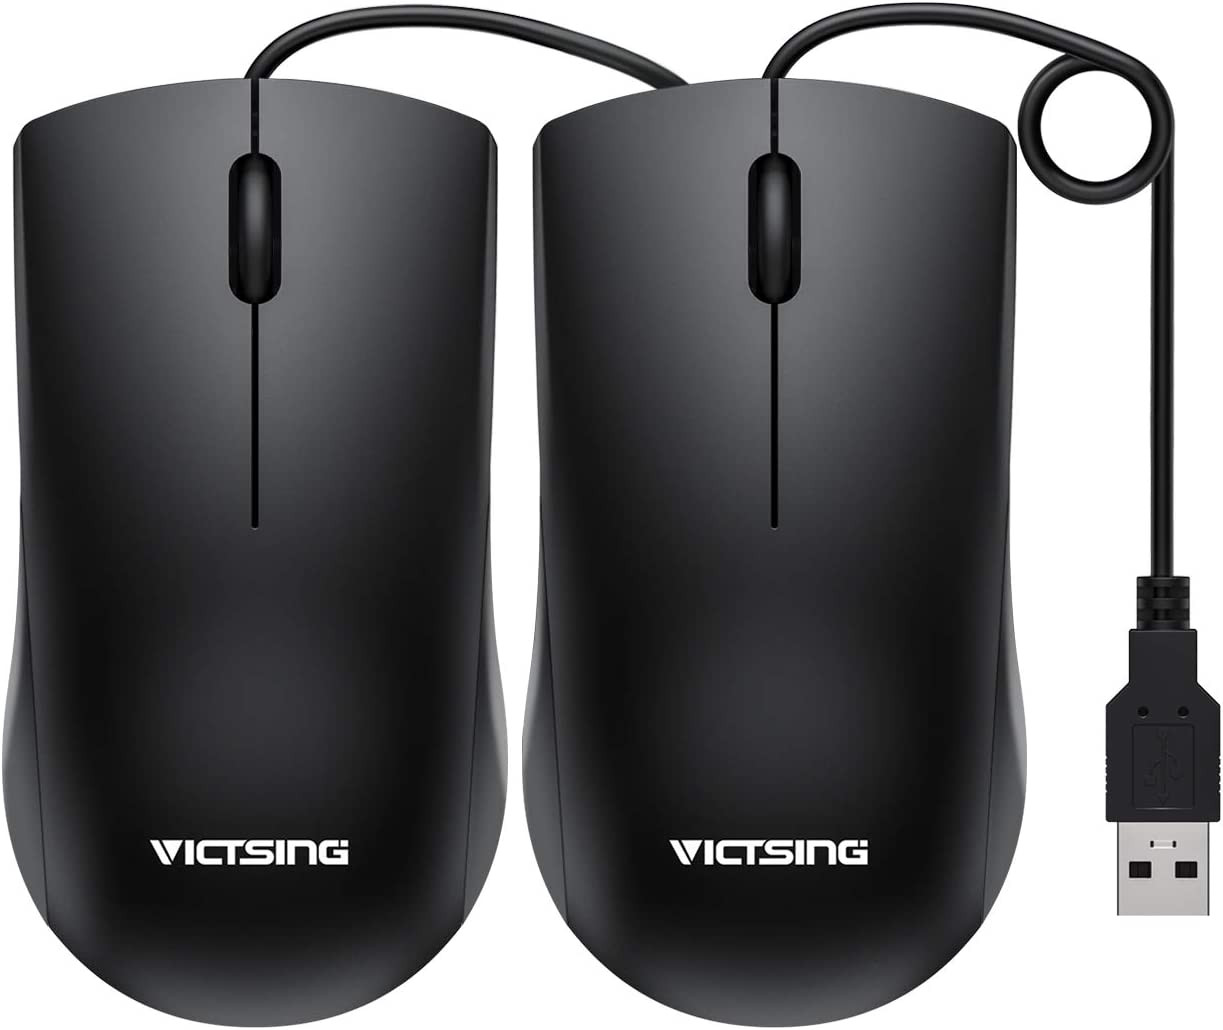 VicTsing Computer Mouse 2 Pack, 【2020 Classic】 USB Mouse Optical Wired Mouse with 25% Higher Efficiency for Office Work, Compatible with Computer Laptop, PC, Desktop, Windows 7/8/10/XP, Vista and Mac